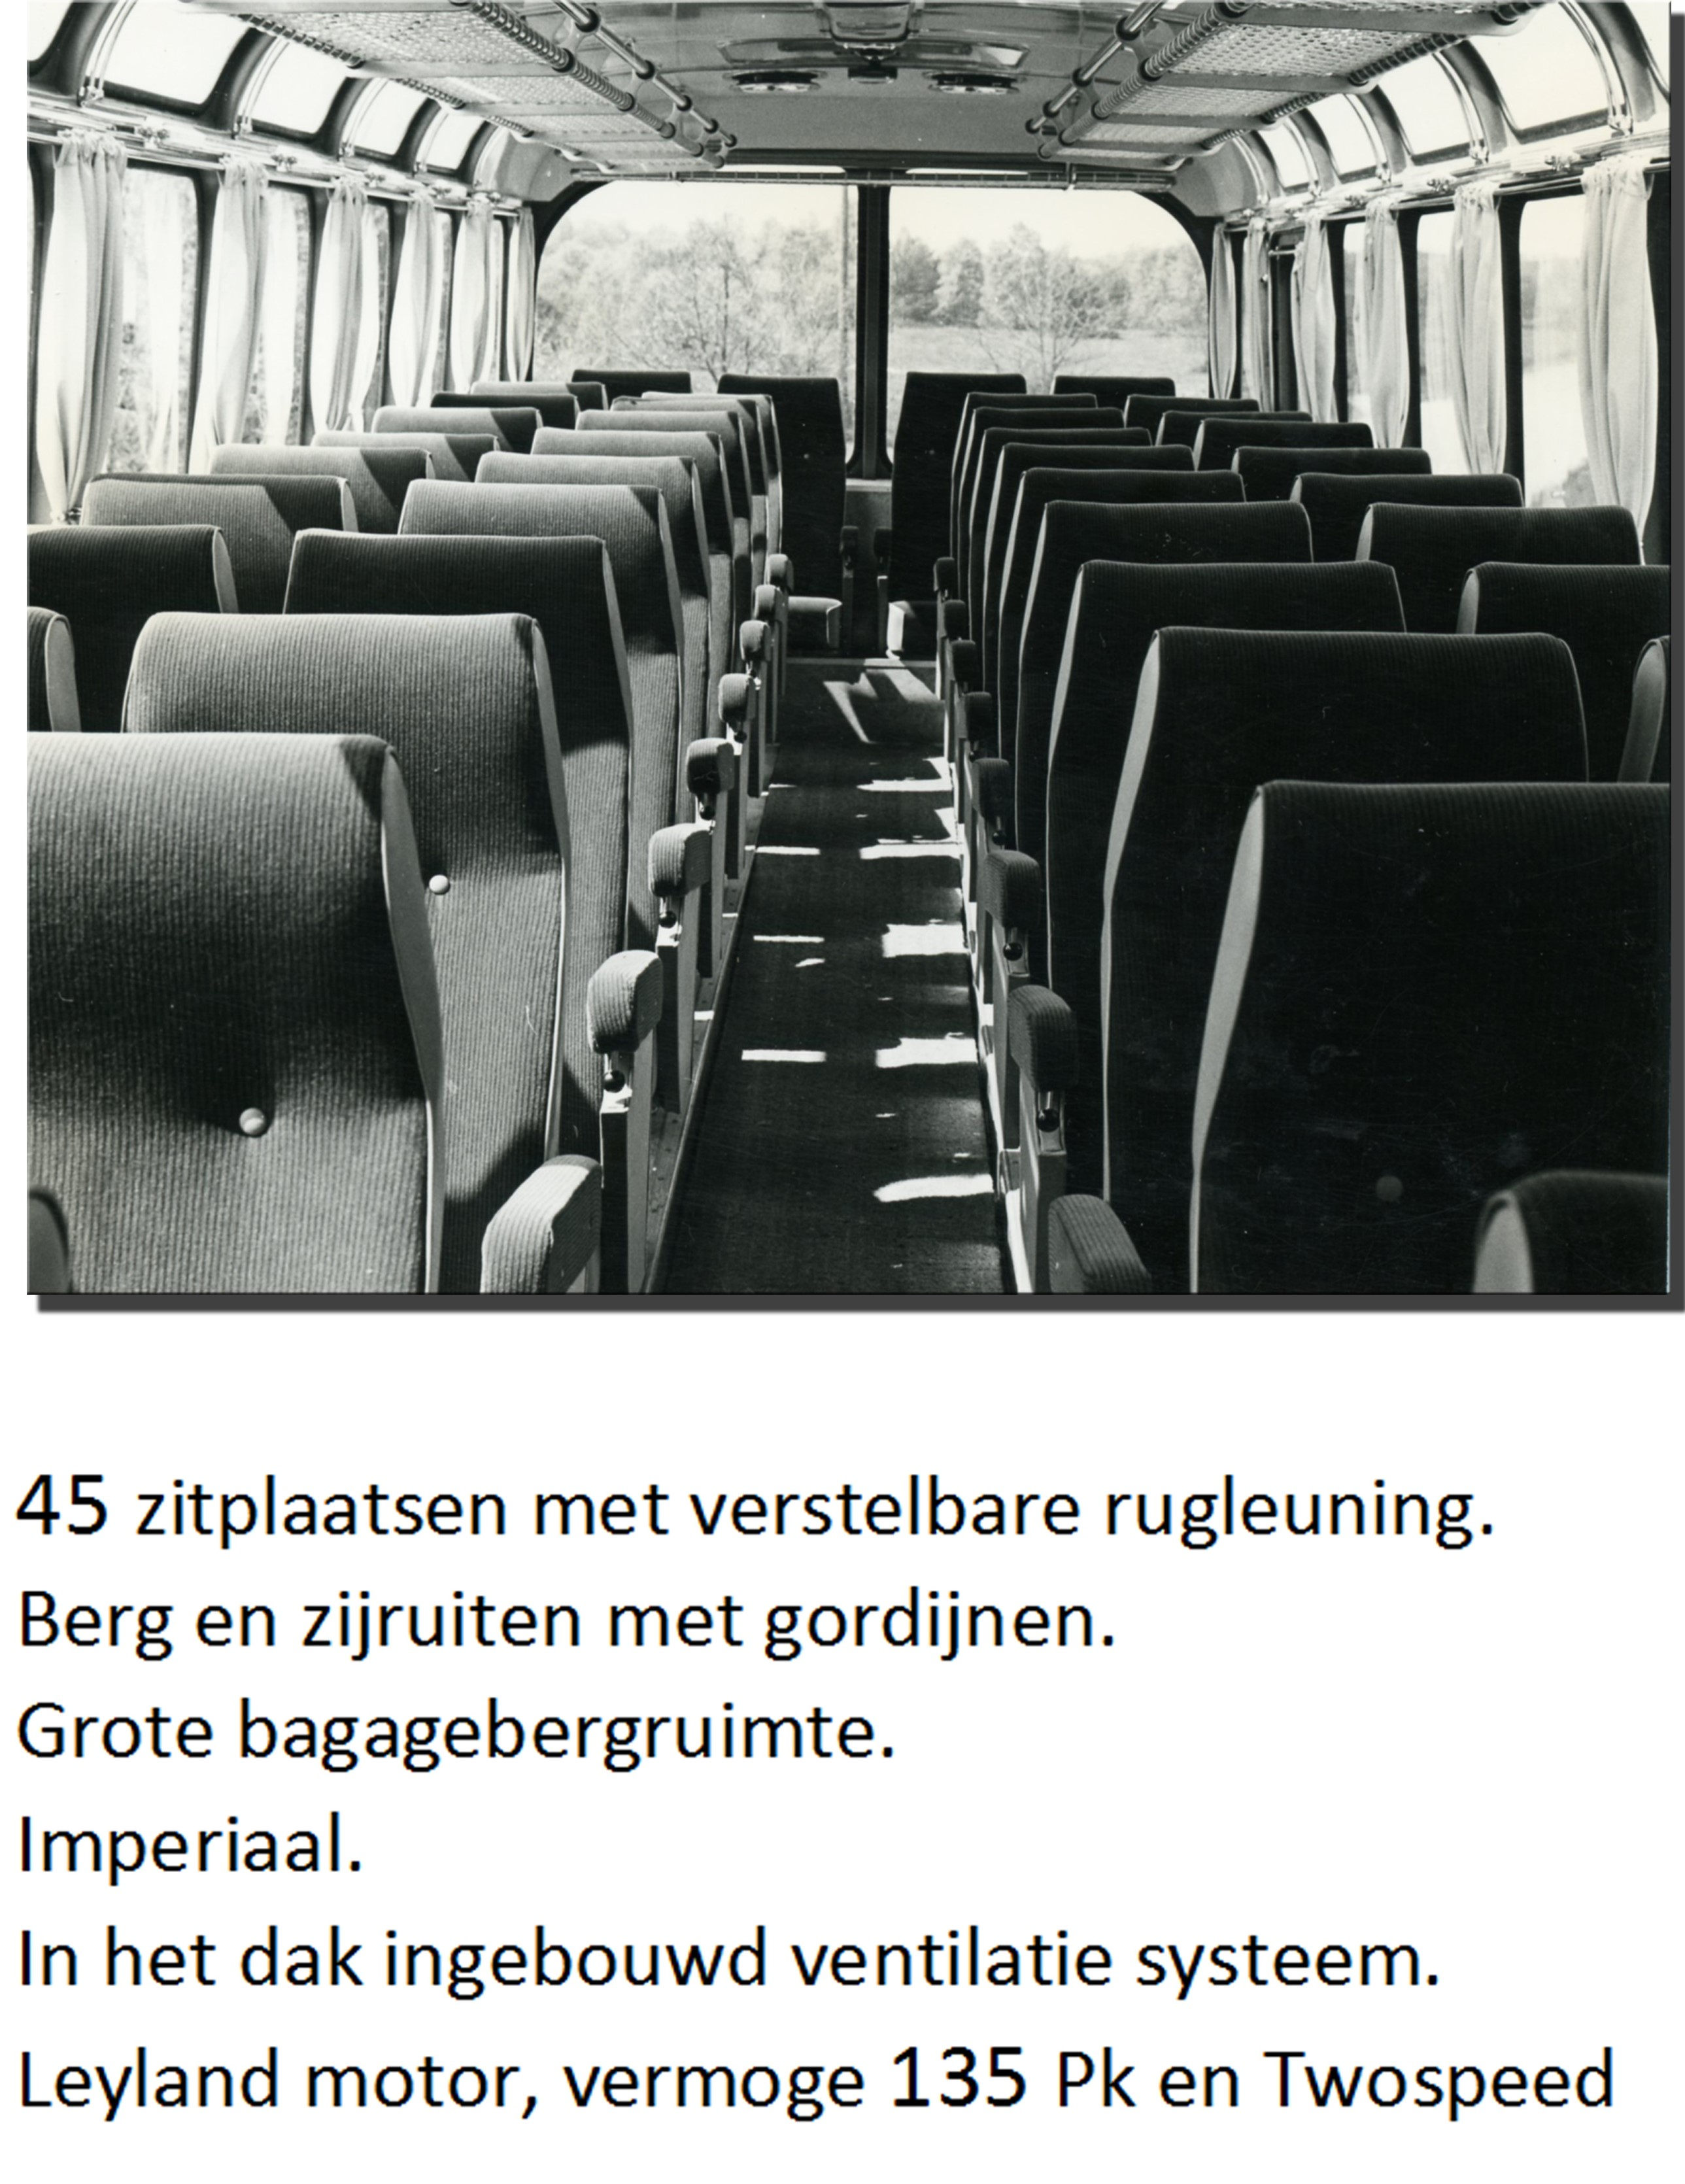 7516-Zuid-Ooster-2